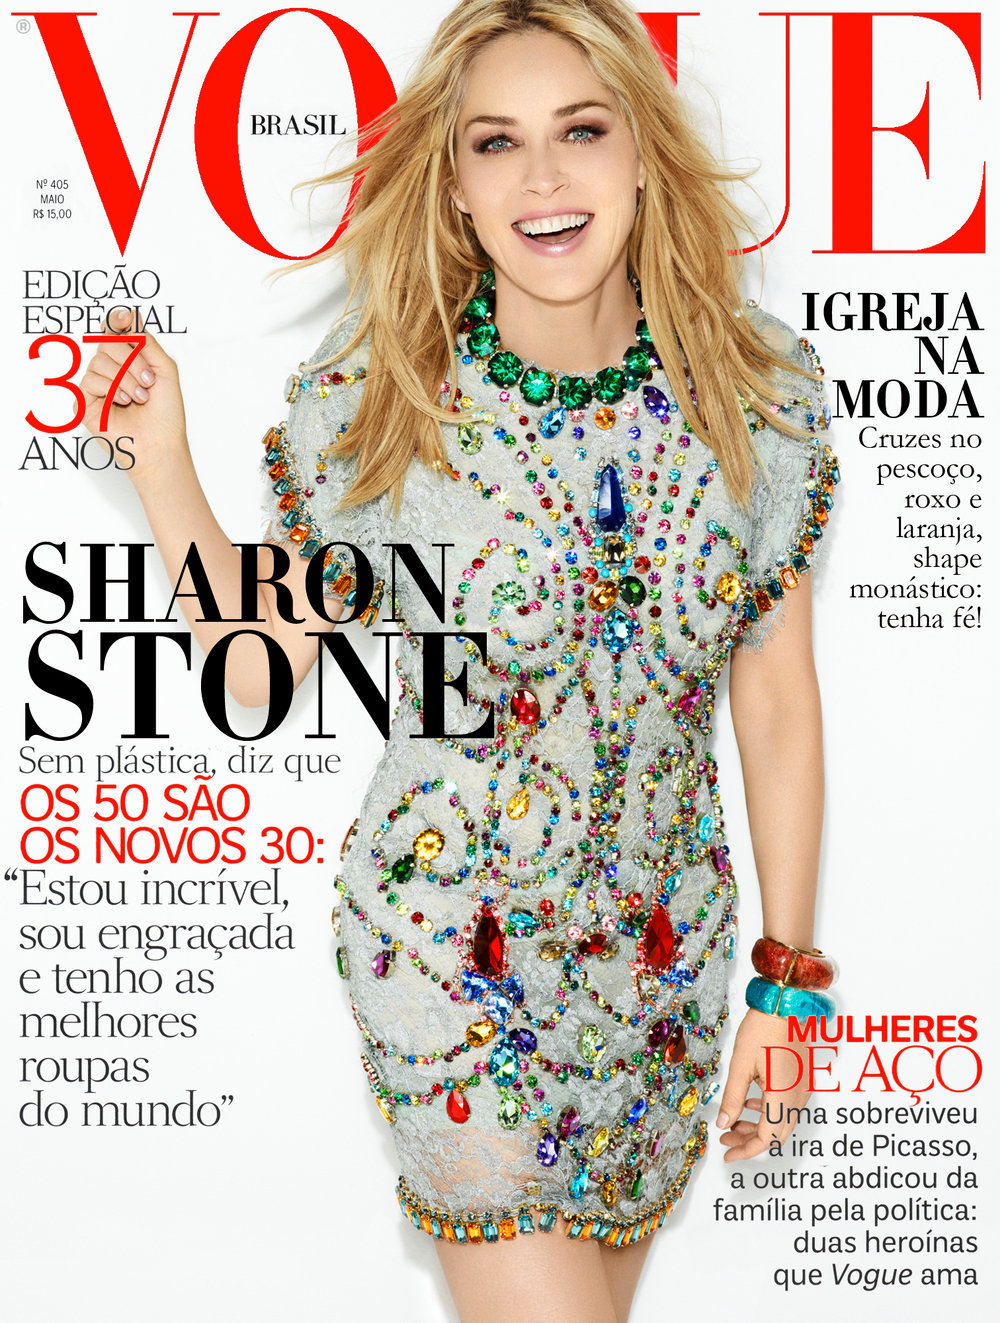 VOGUE SHARON STONE FINAL COVER_GS.jpg